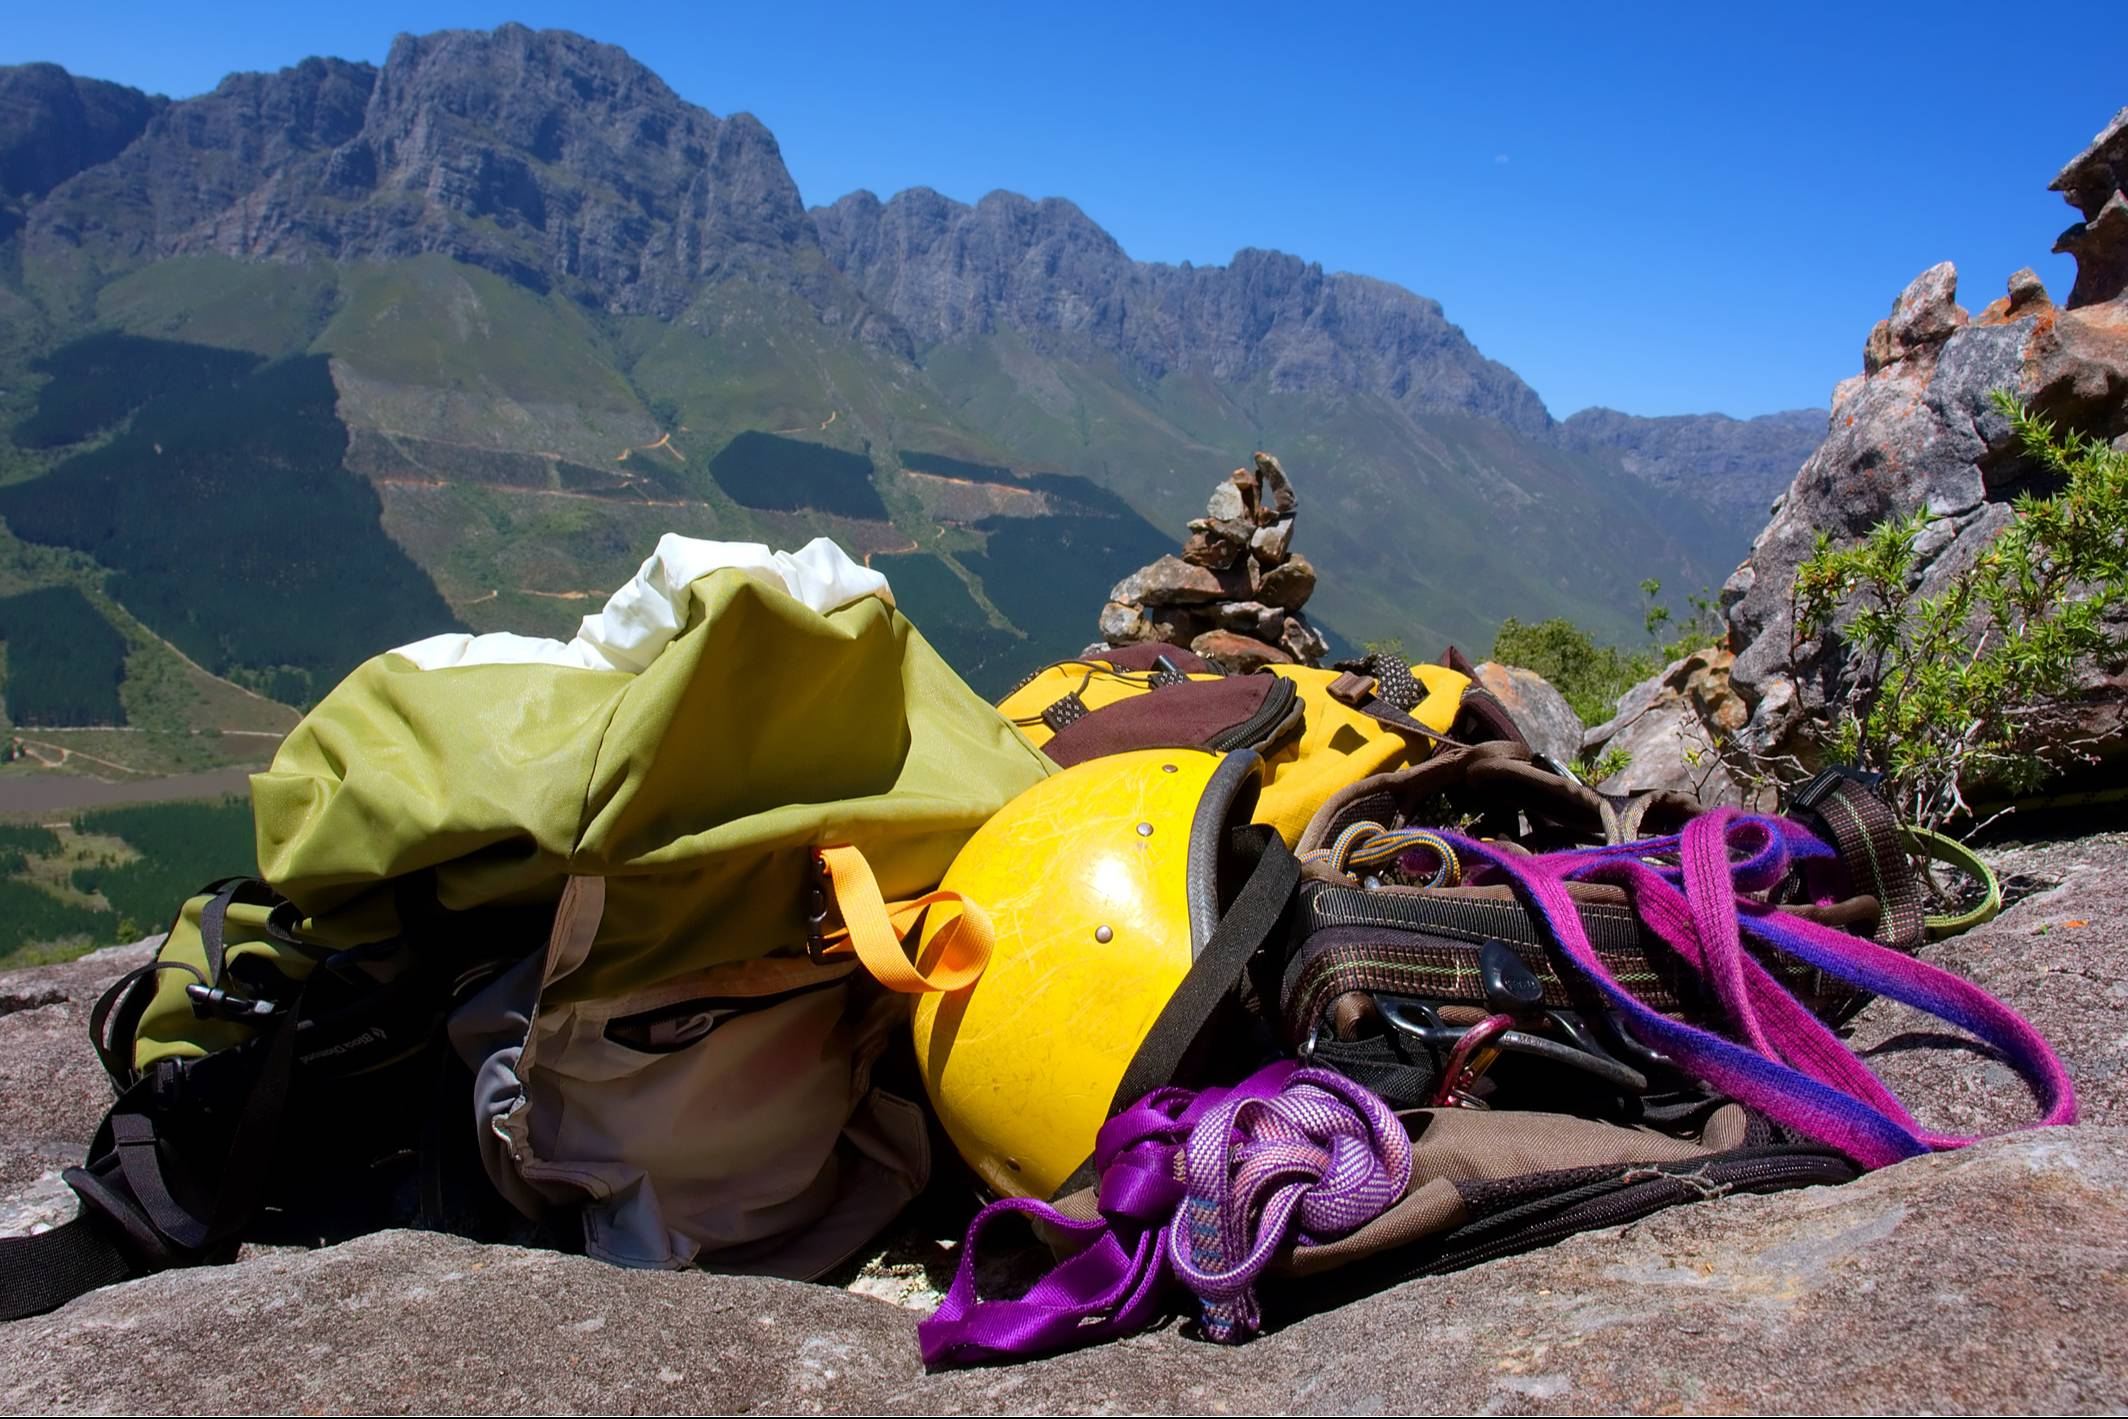 Outdoor gear on mountain trail